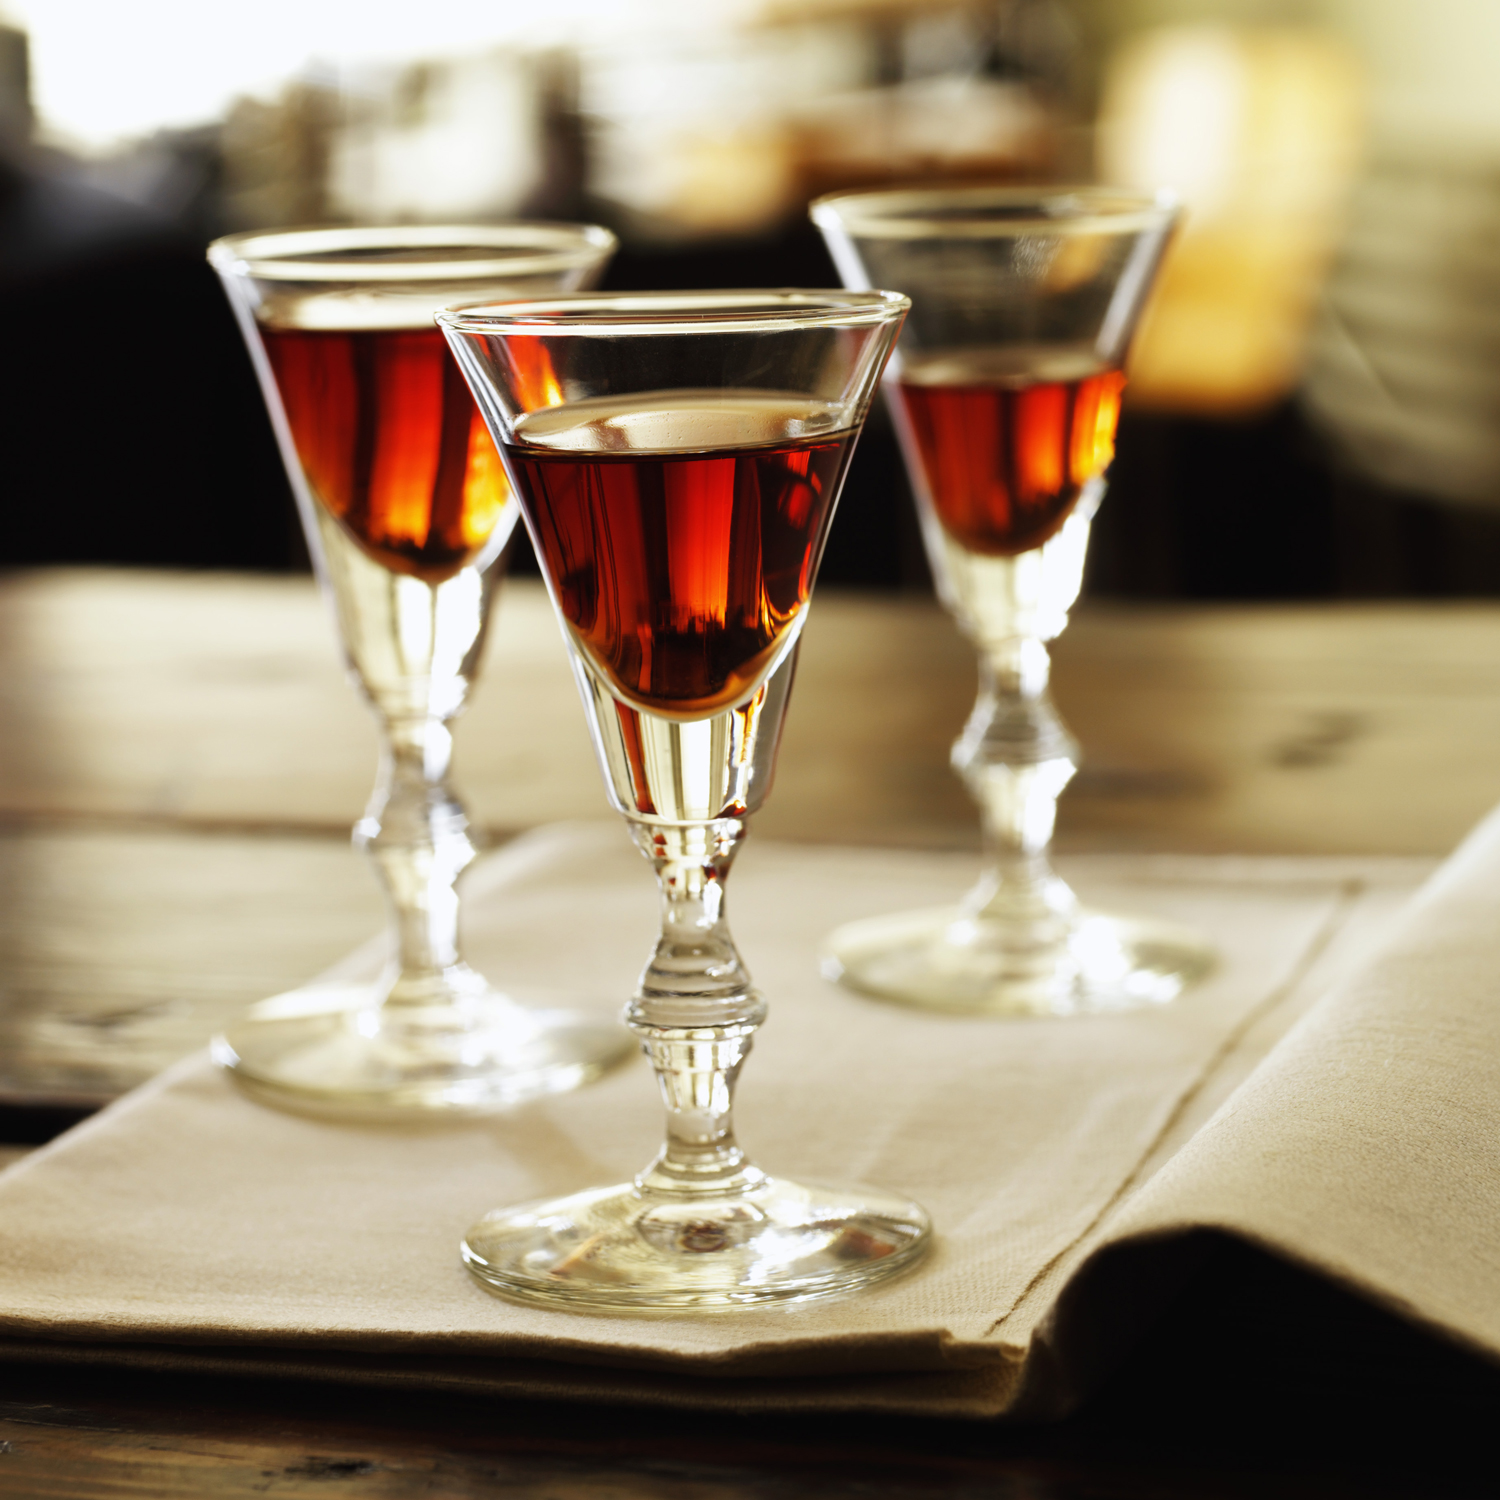 Why You Should Be Drinking Port as a Digestif